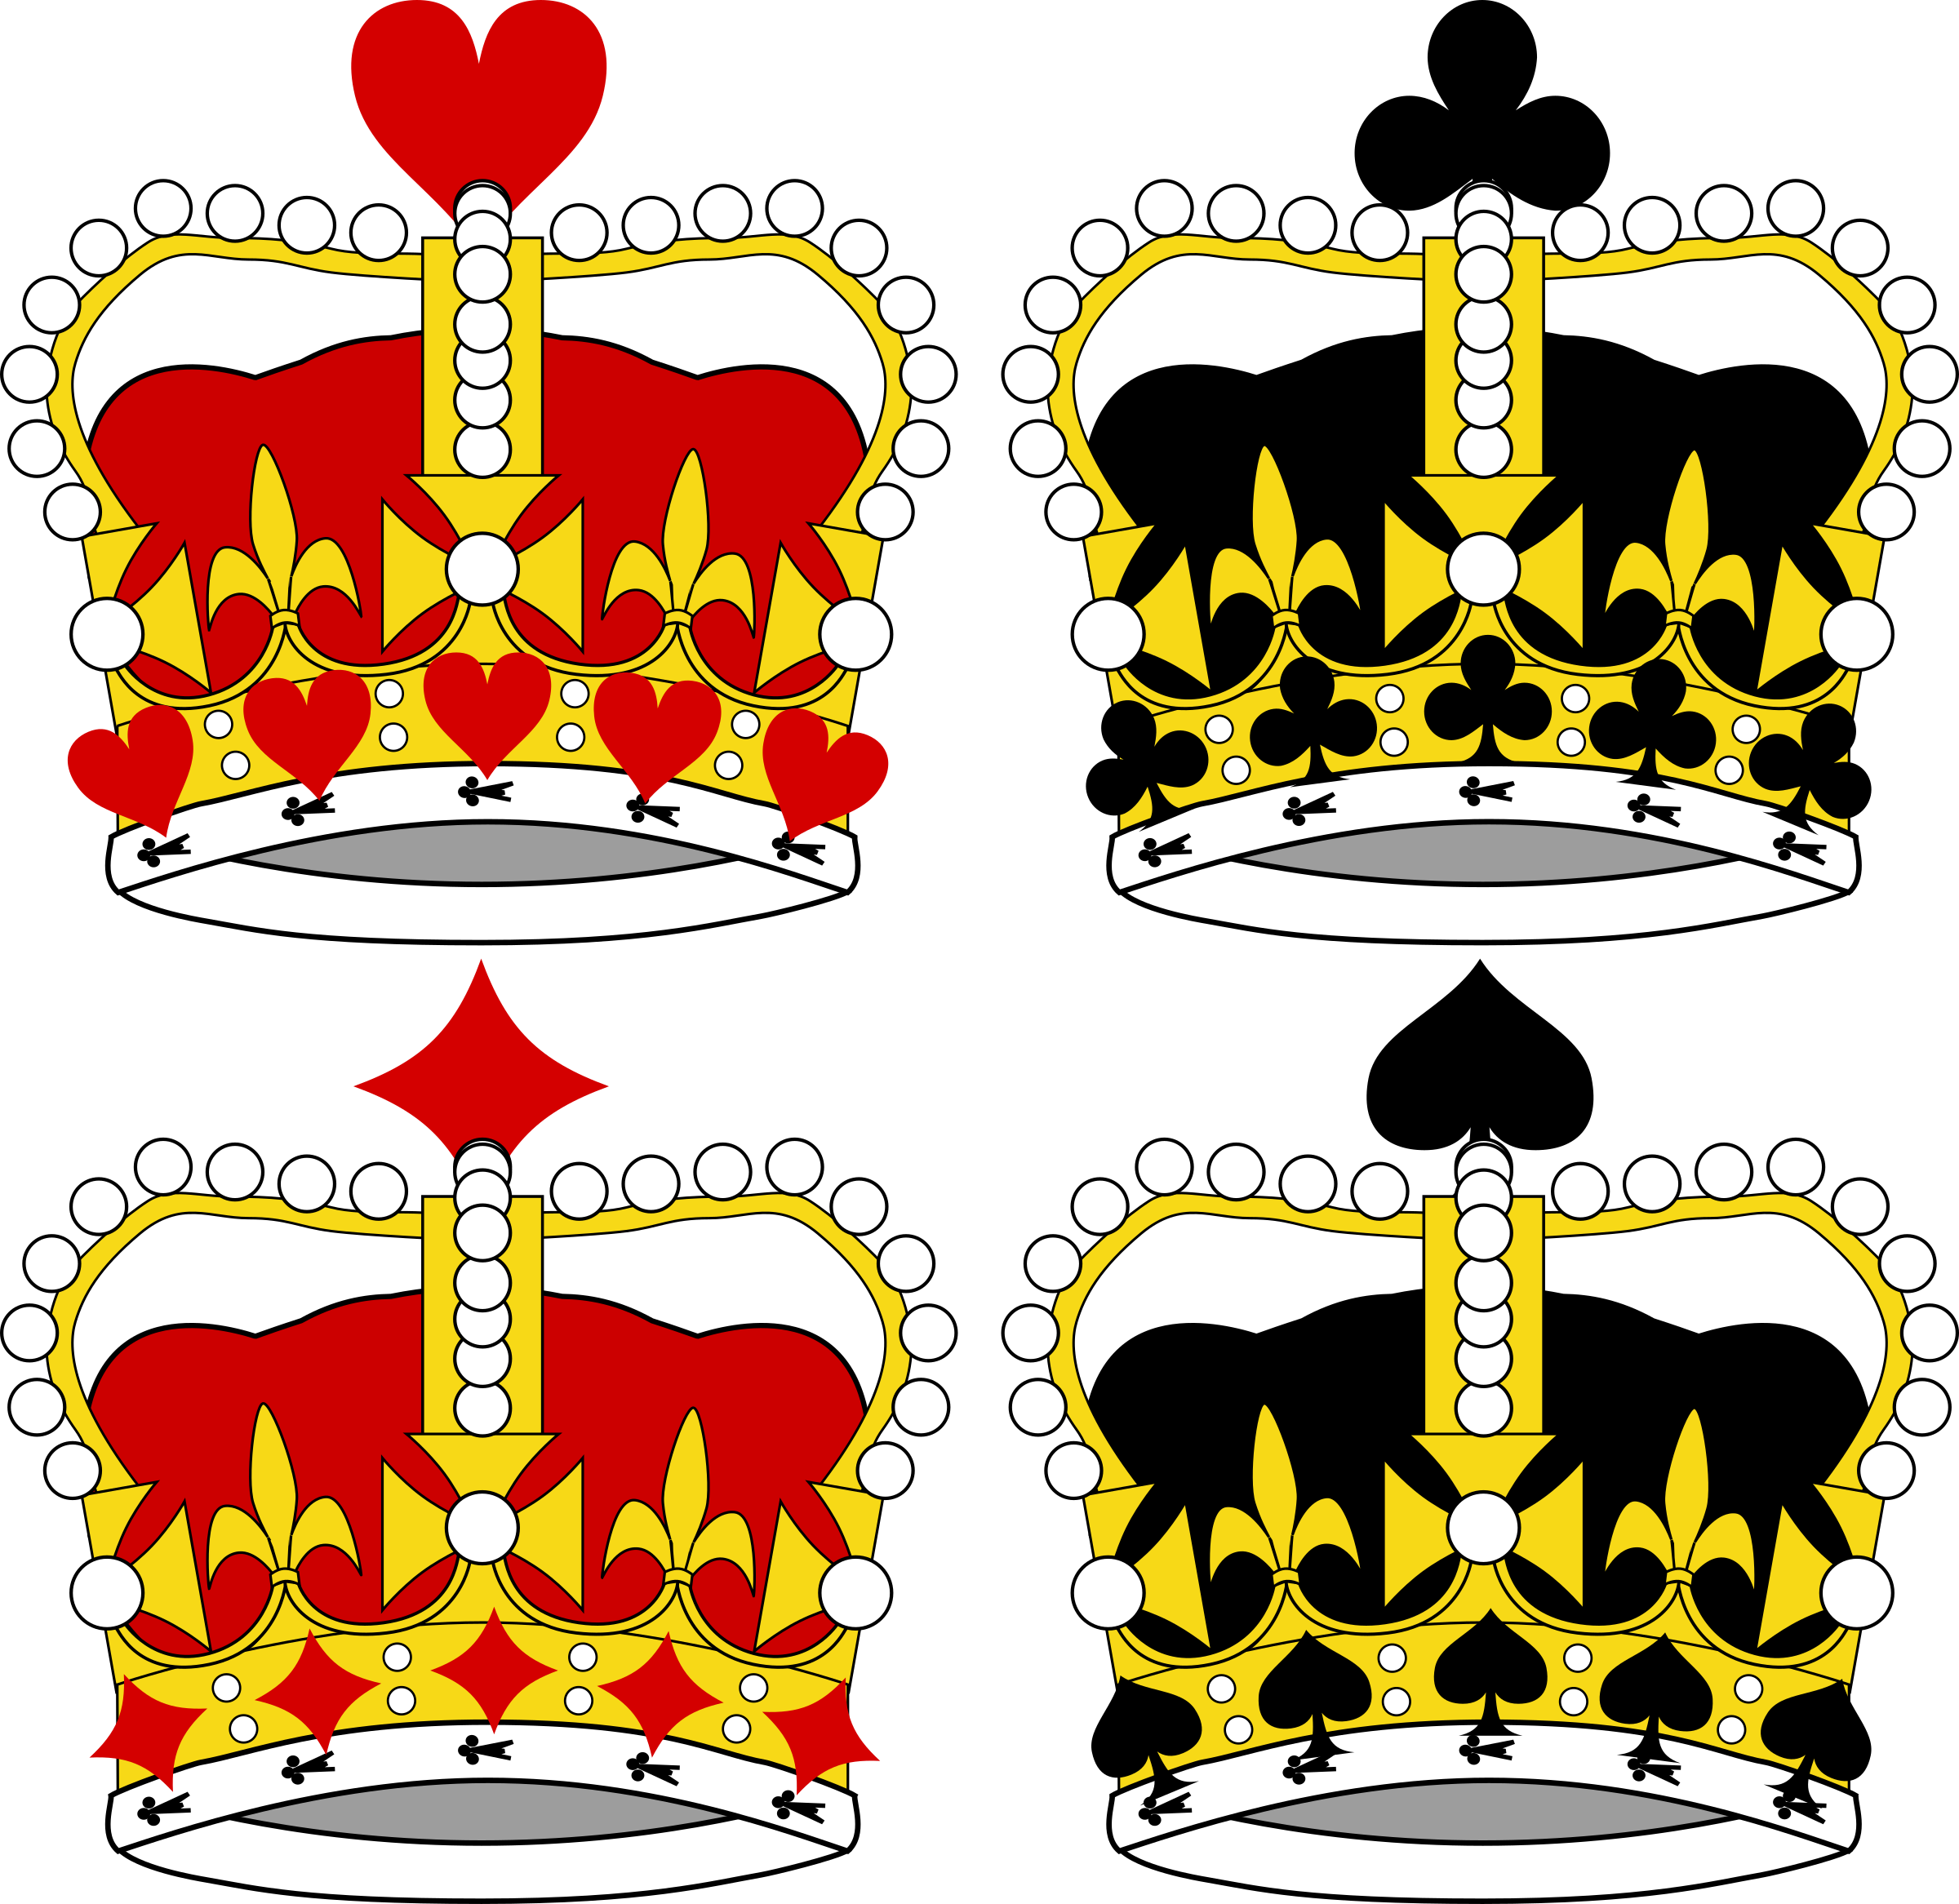 Clipart crown vector vector black and white stock Clipart - Stylized Crowns for Card Faces vector black and white stock